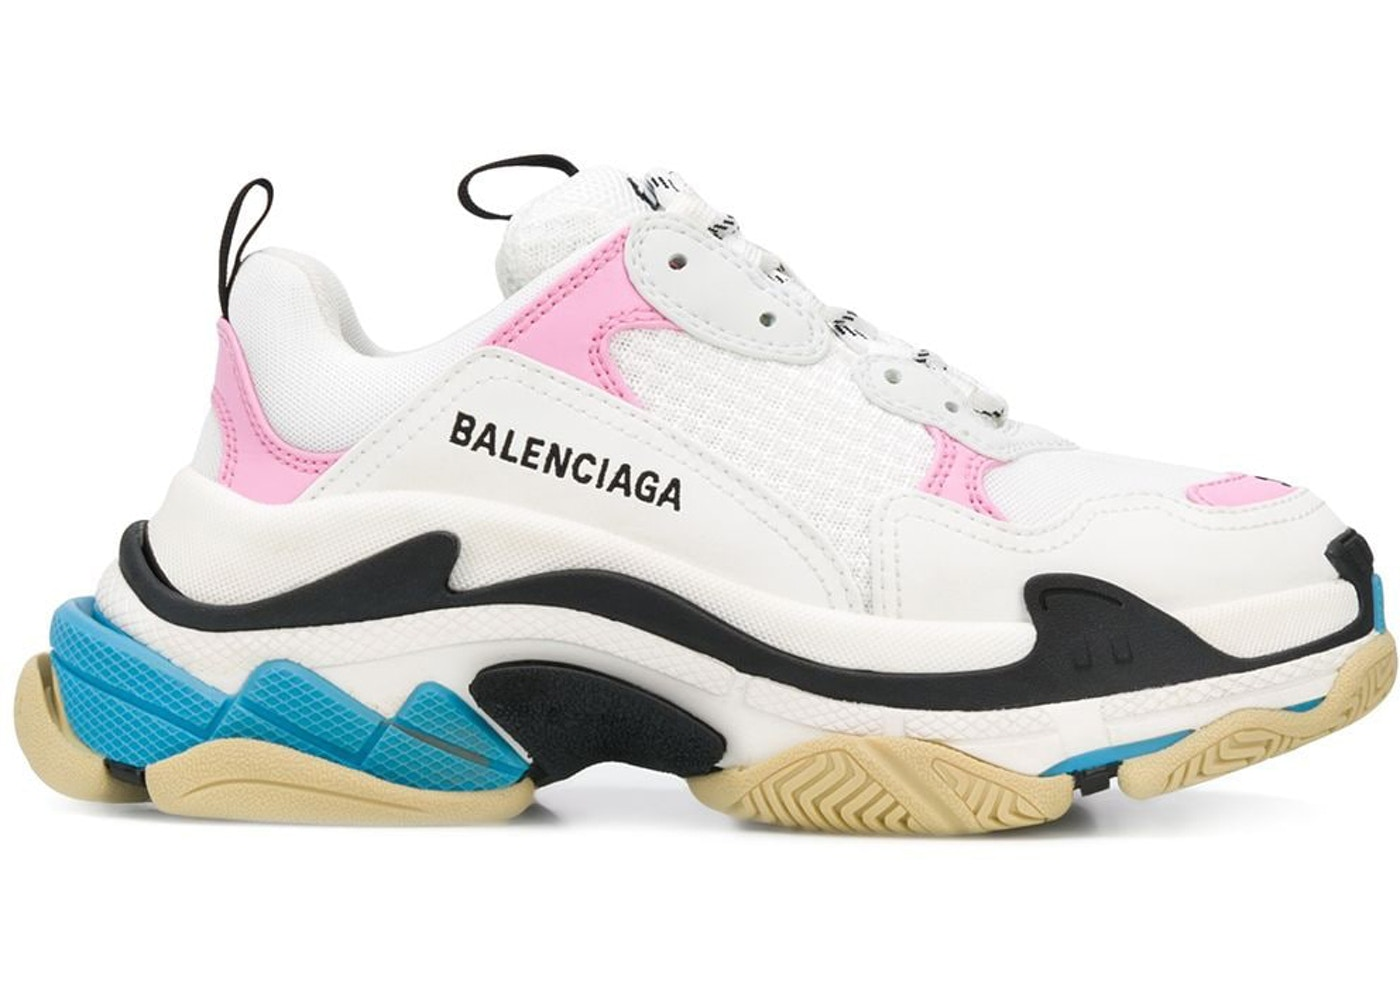 Balenciagas New Track Sneakers Are Here & Theyre